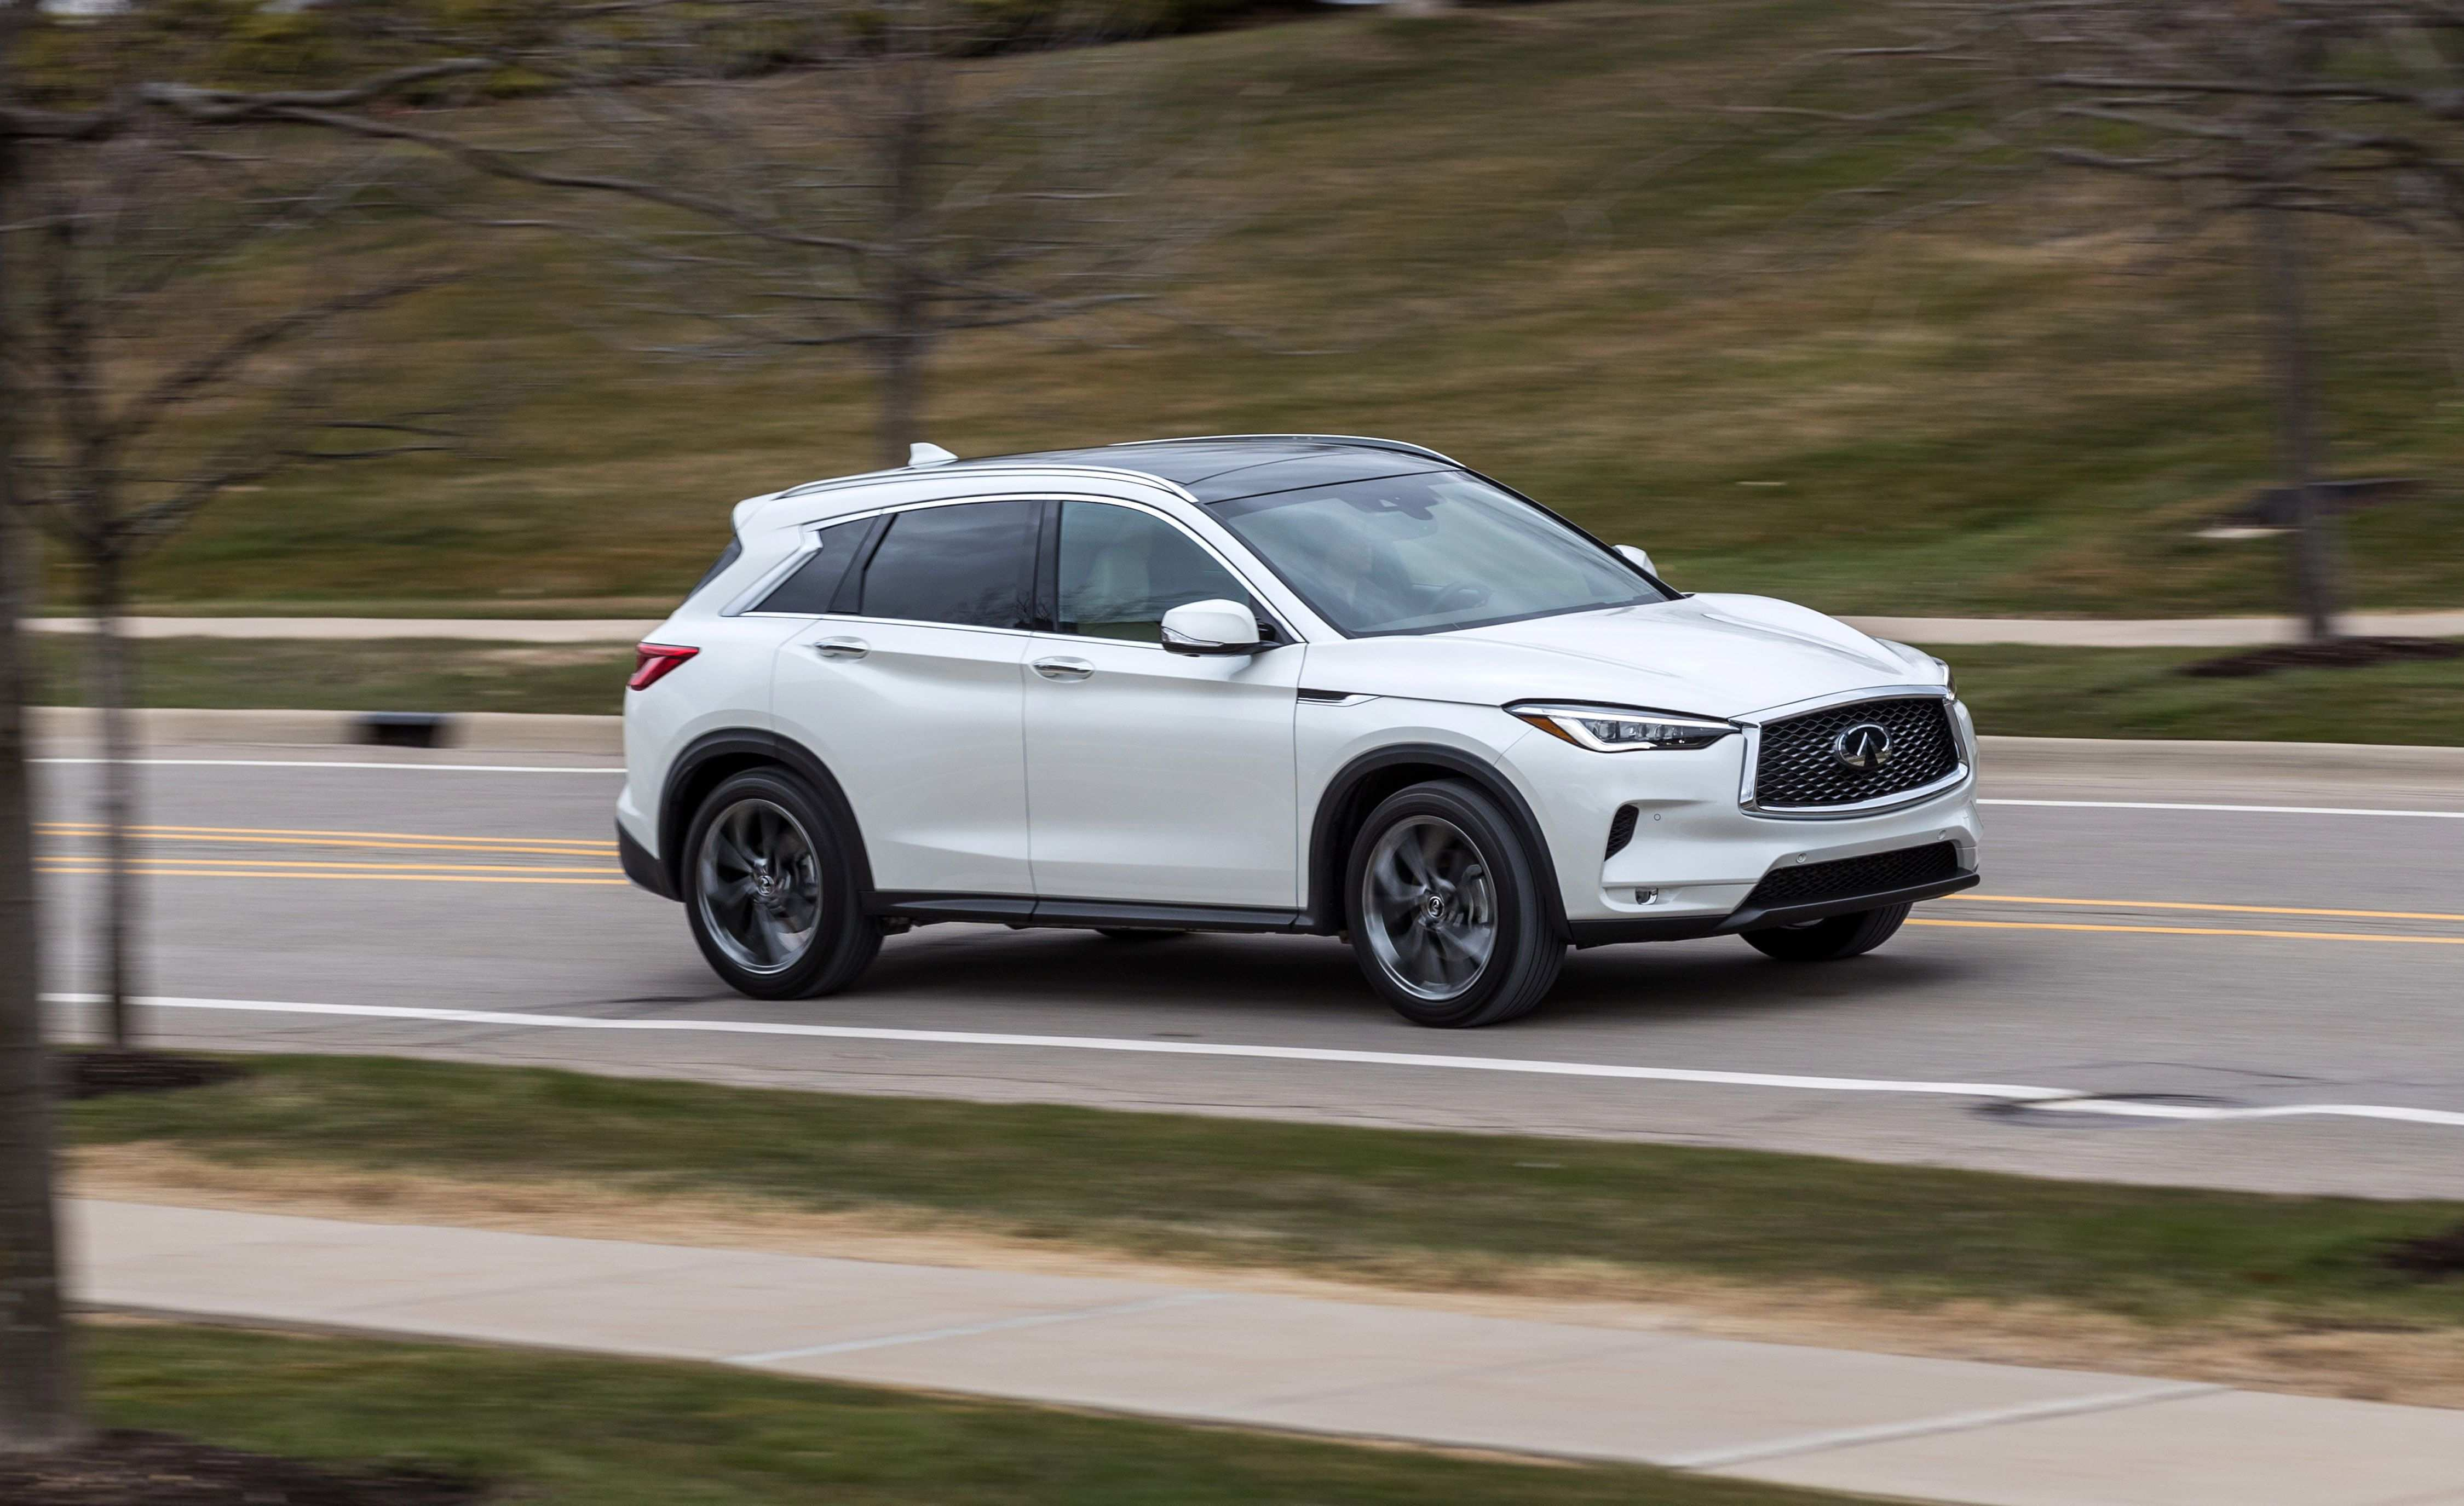 80 Best Review 2019 Infiniti Fx50 Research New with 2019 Infiniti Fx50